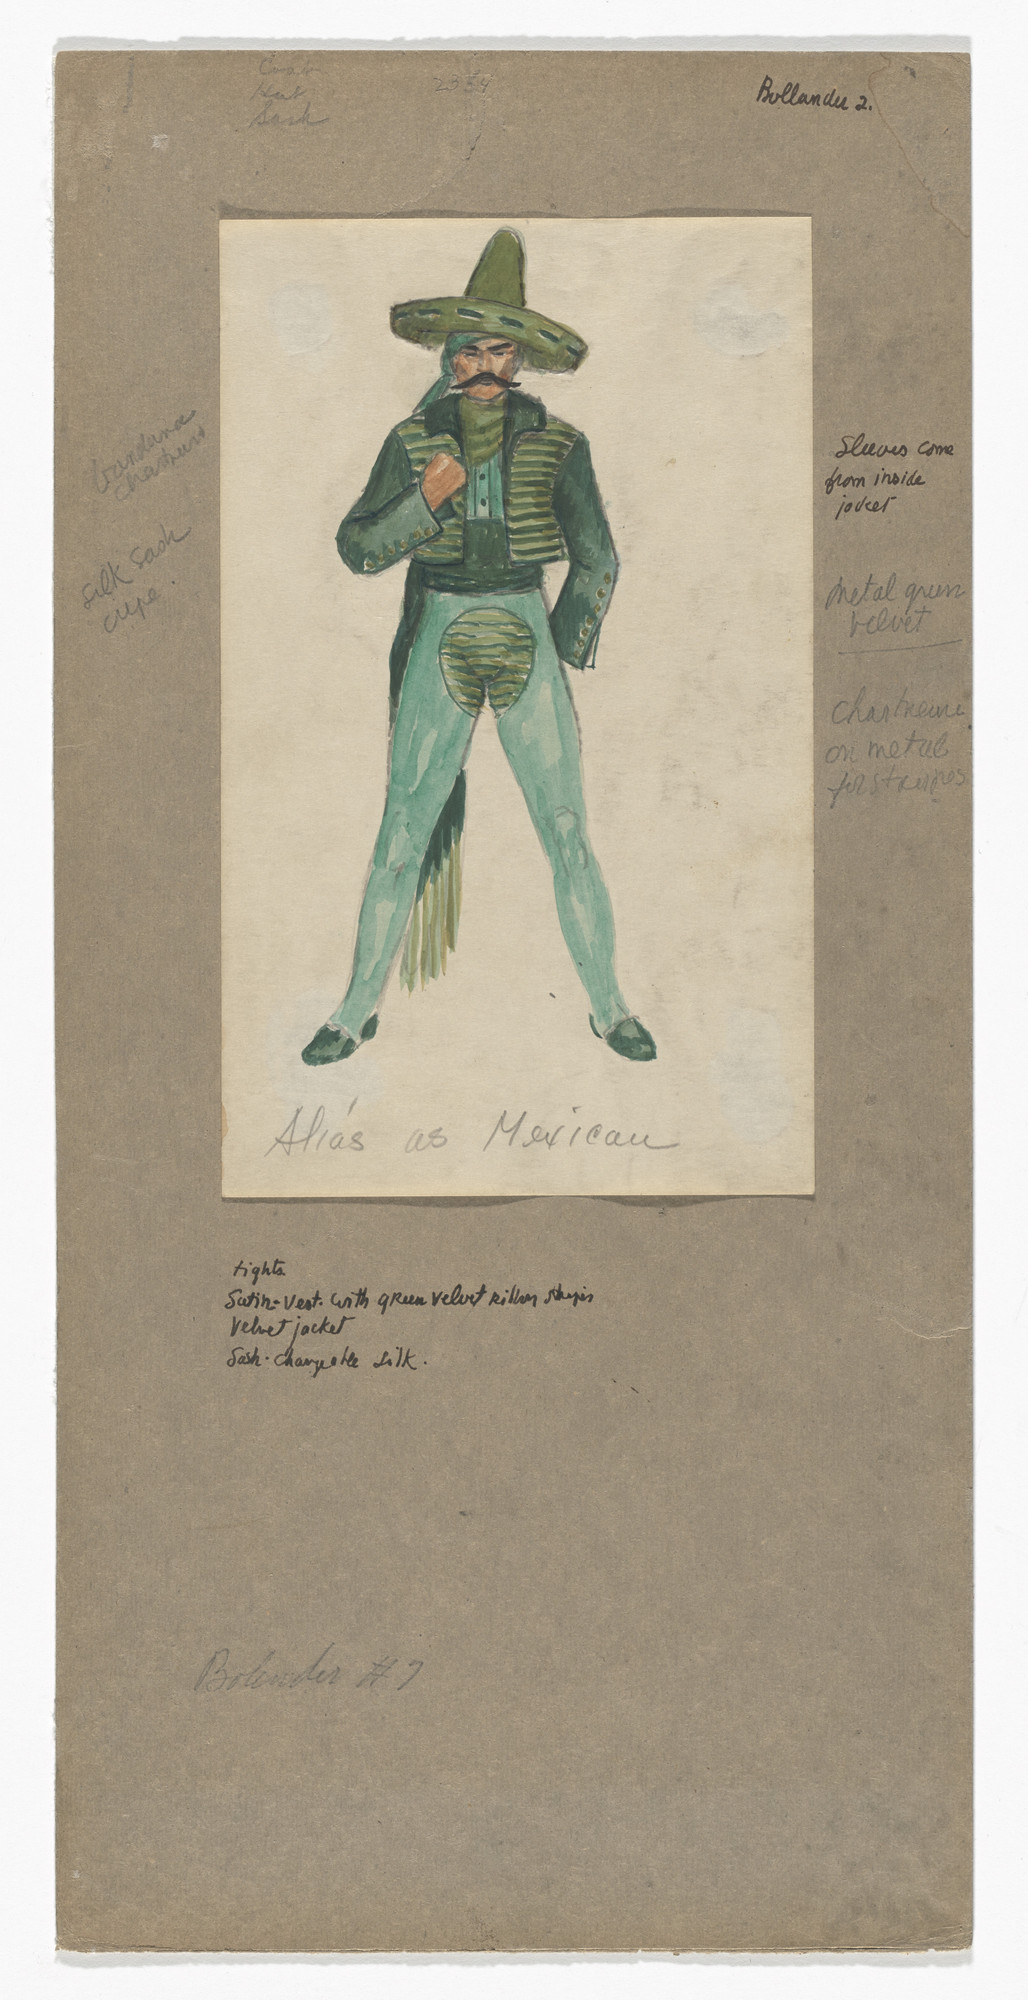 Jared French. Alias as Mexican. Costume design for the ballet Billy the Kid. 1938